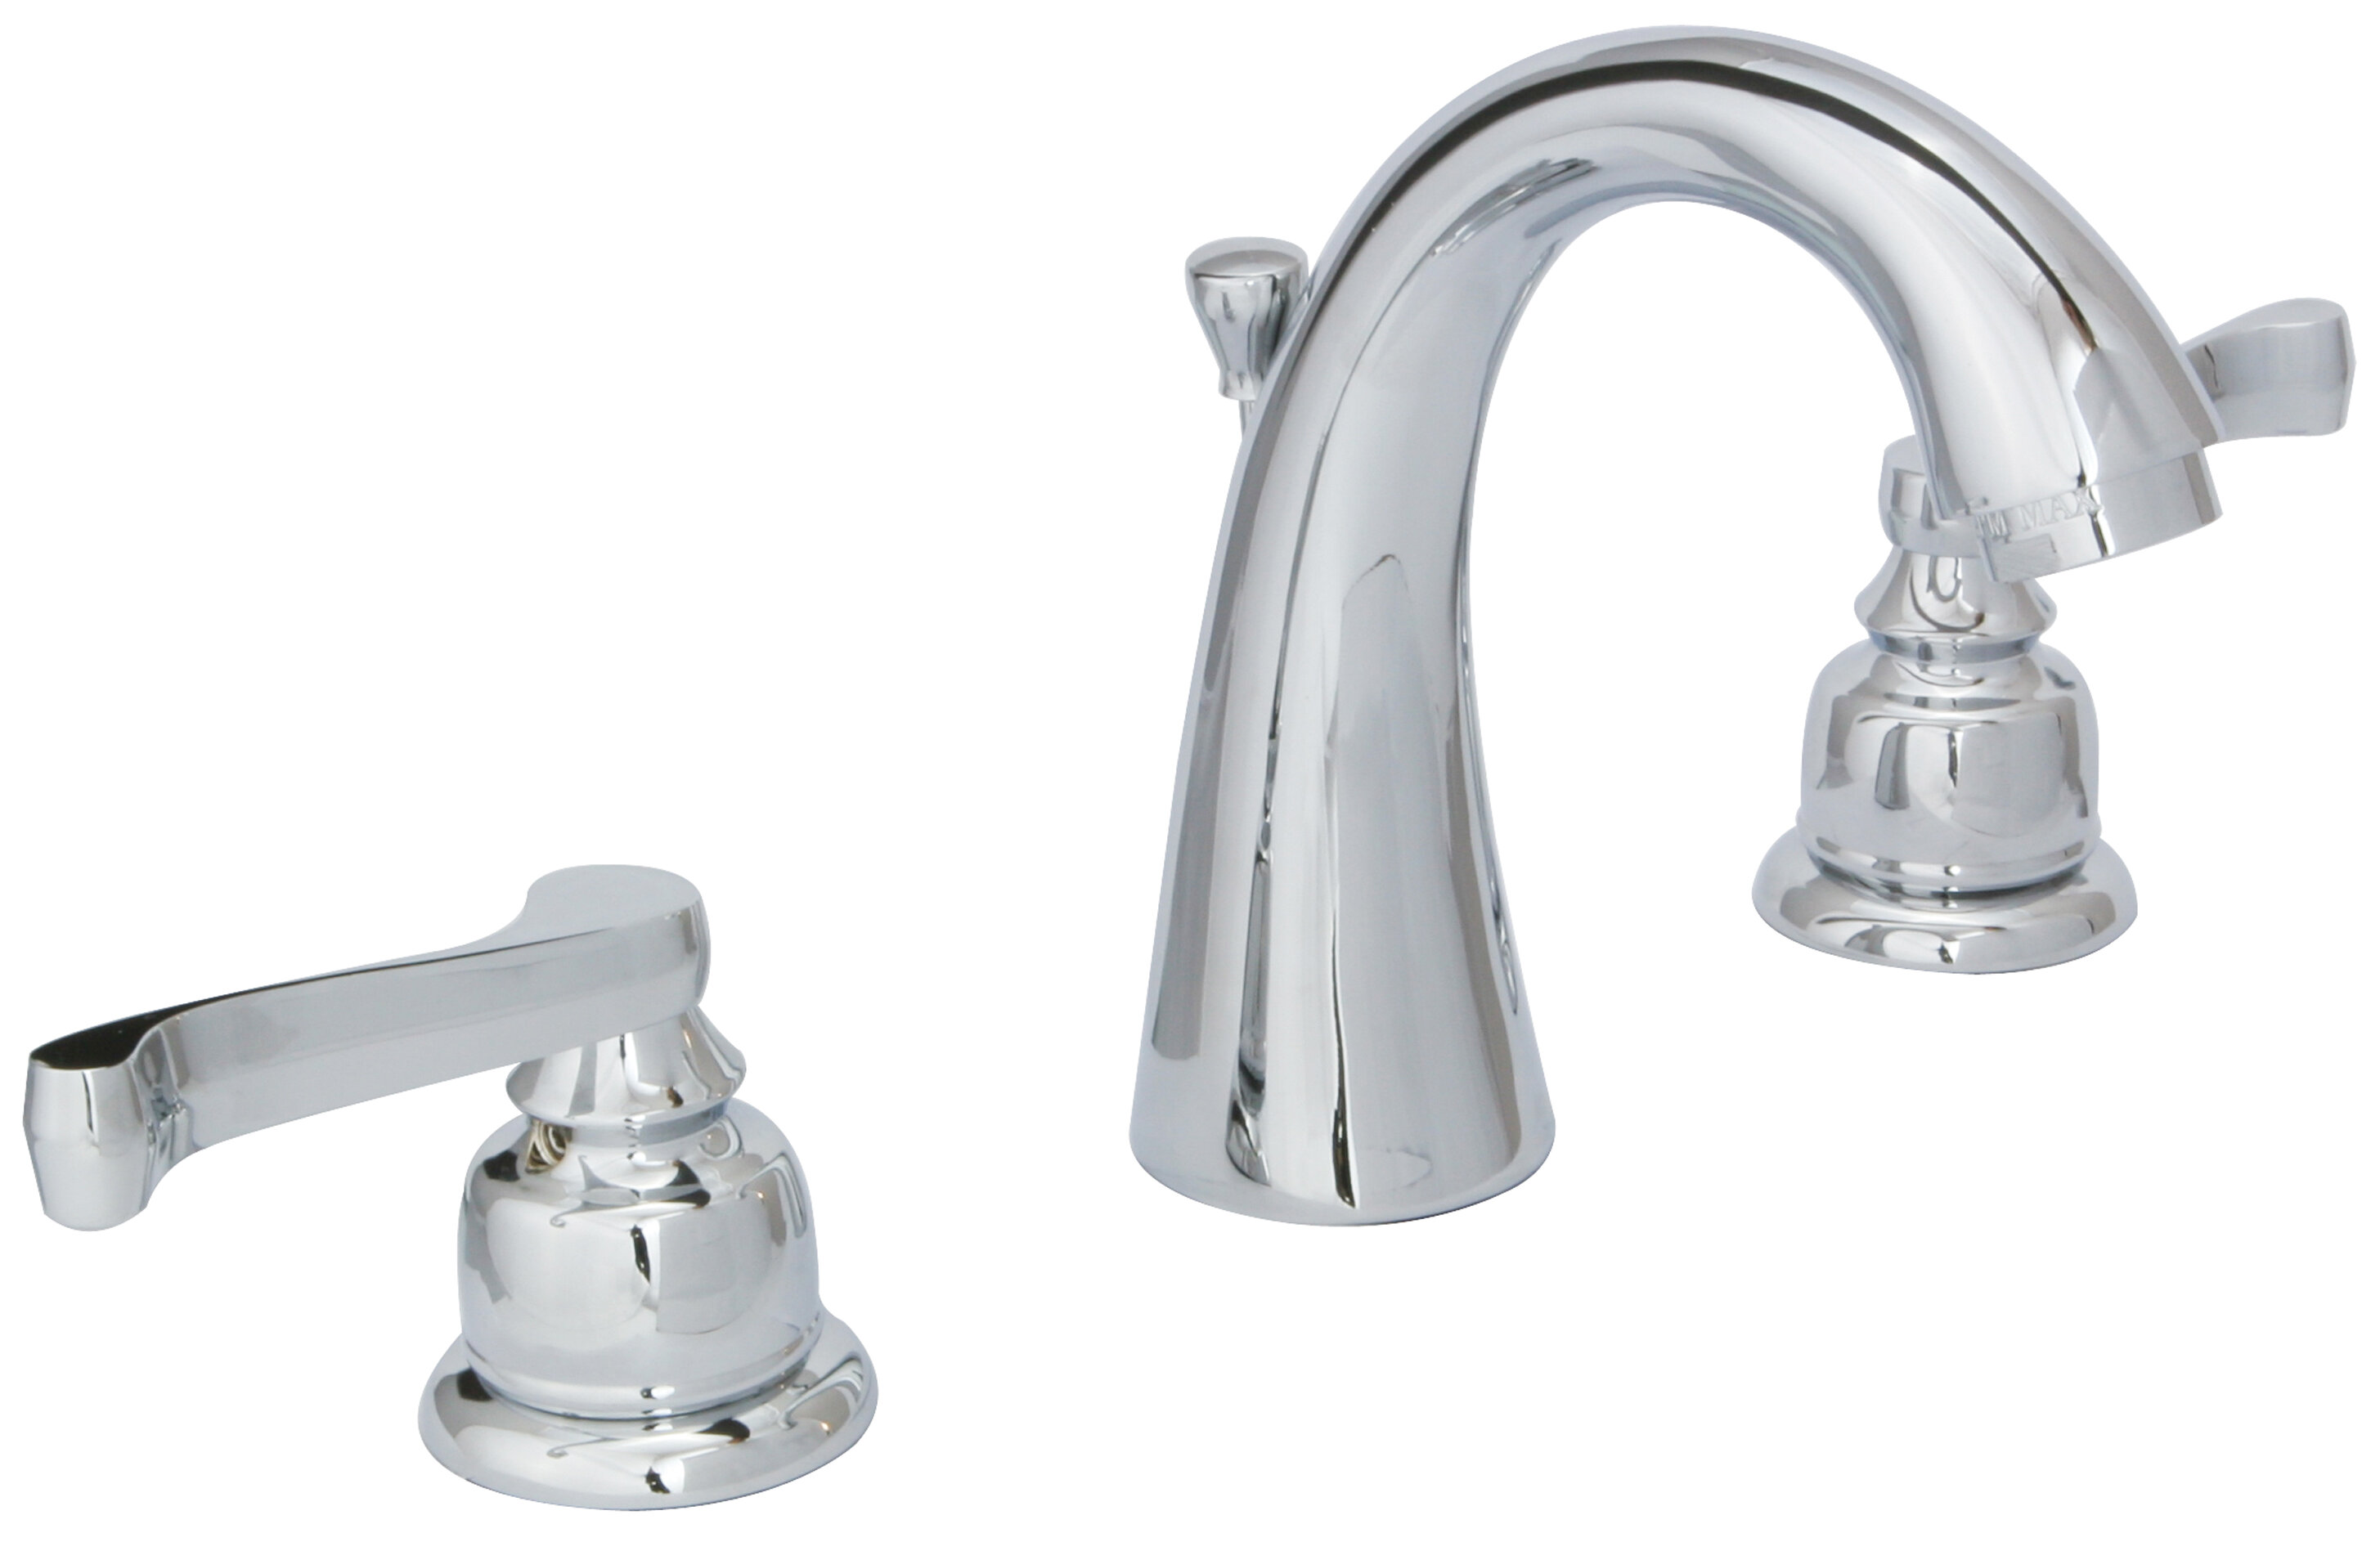 HuntingtonBrass Sienna Widespread Bathroom Faucet with Drain ...